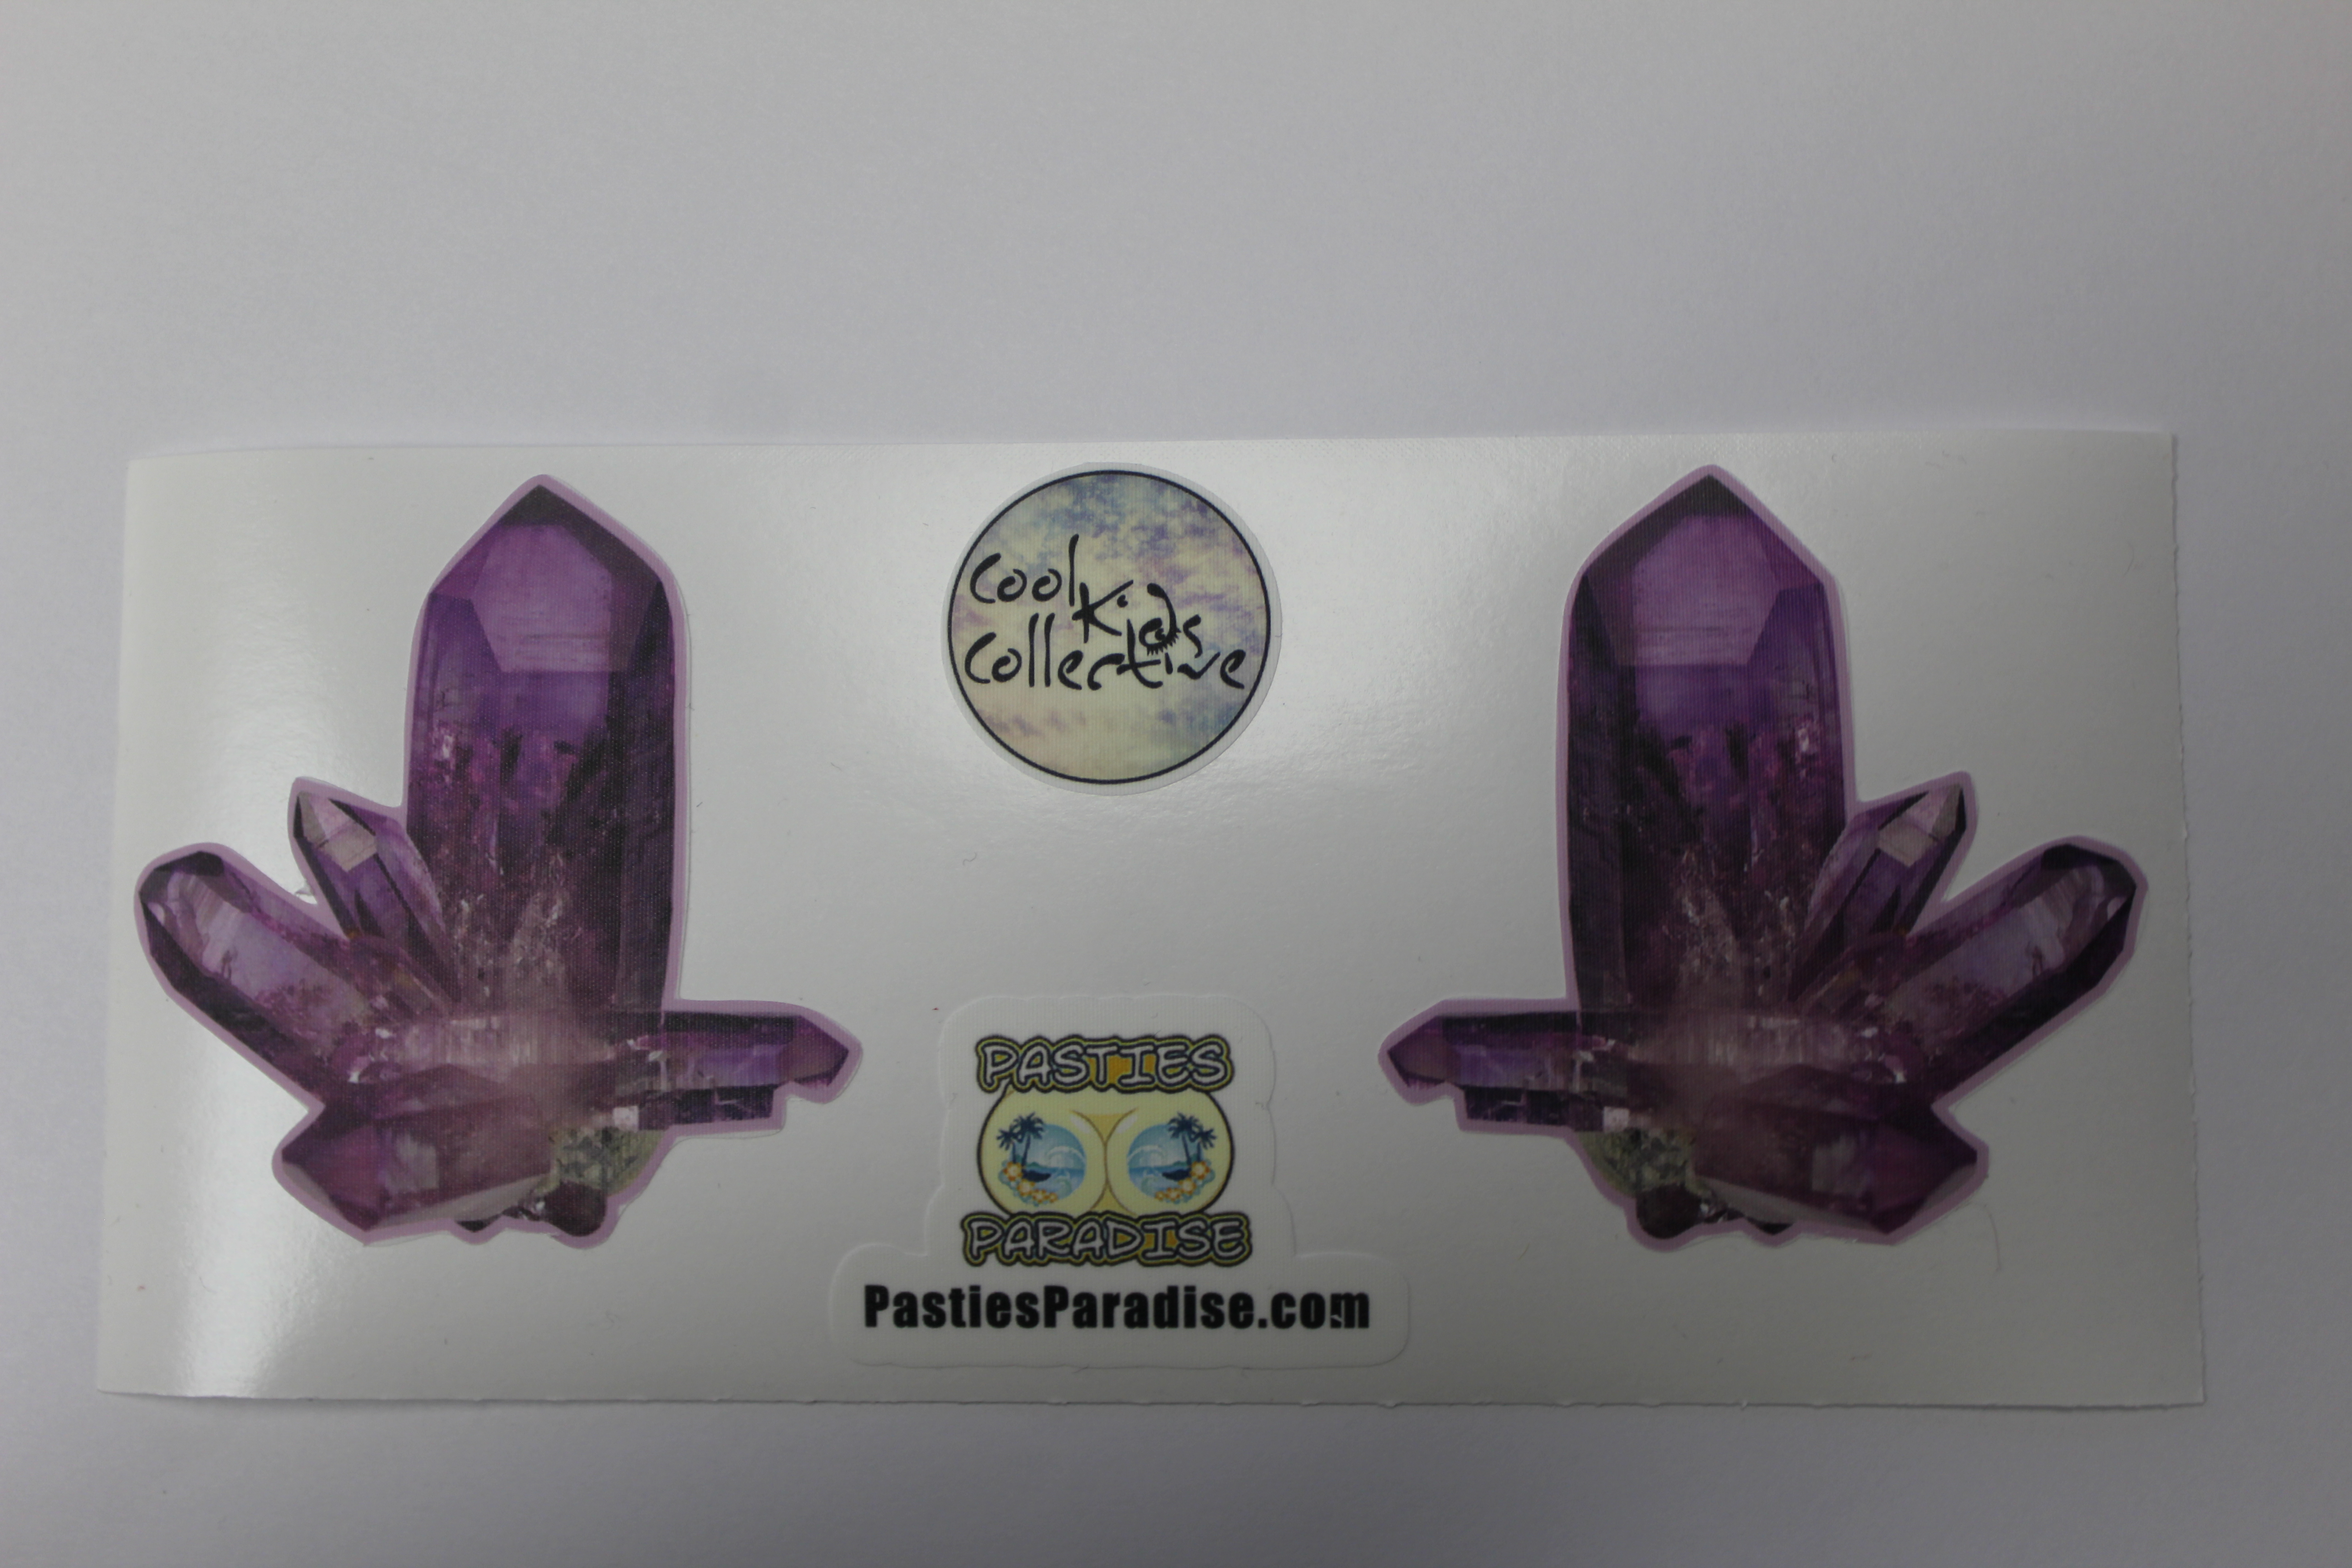 VIOLET QUARTZ PASTIES FROM PASTIES PARADISE.